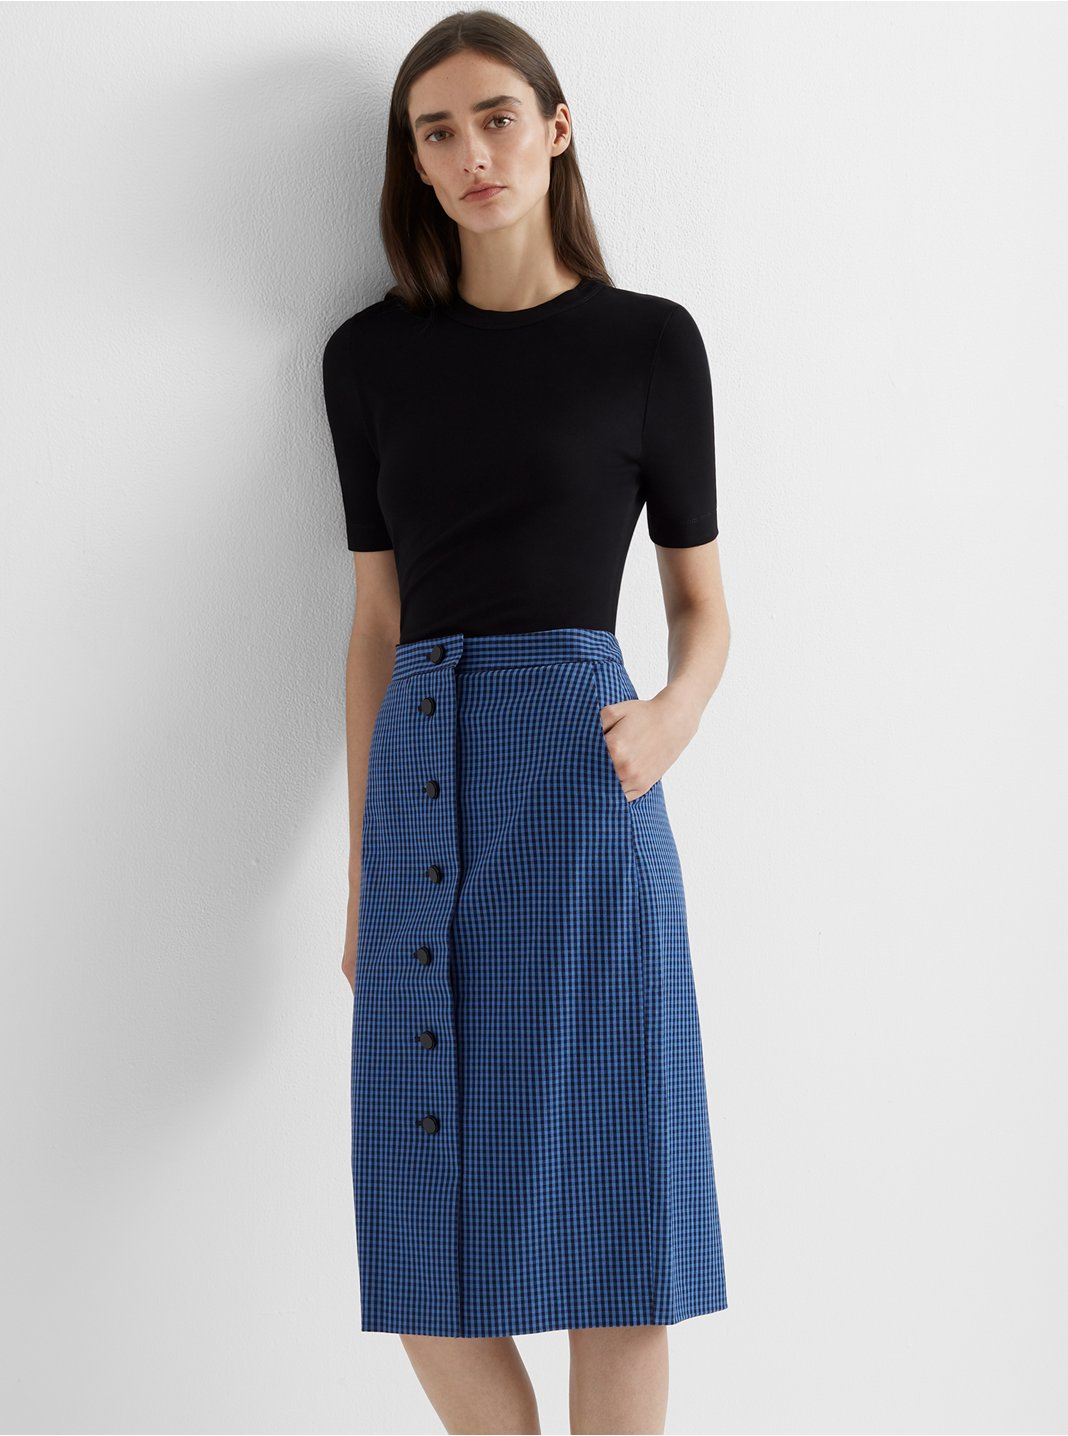 클럽 모나코 펜슬 스커트 Club Monaco Pattern Pencil Skirt,Blue Multi